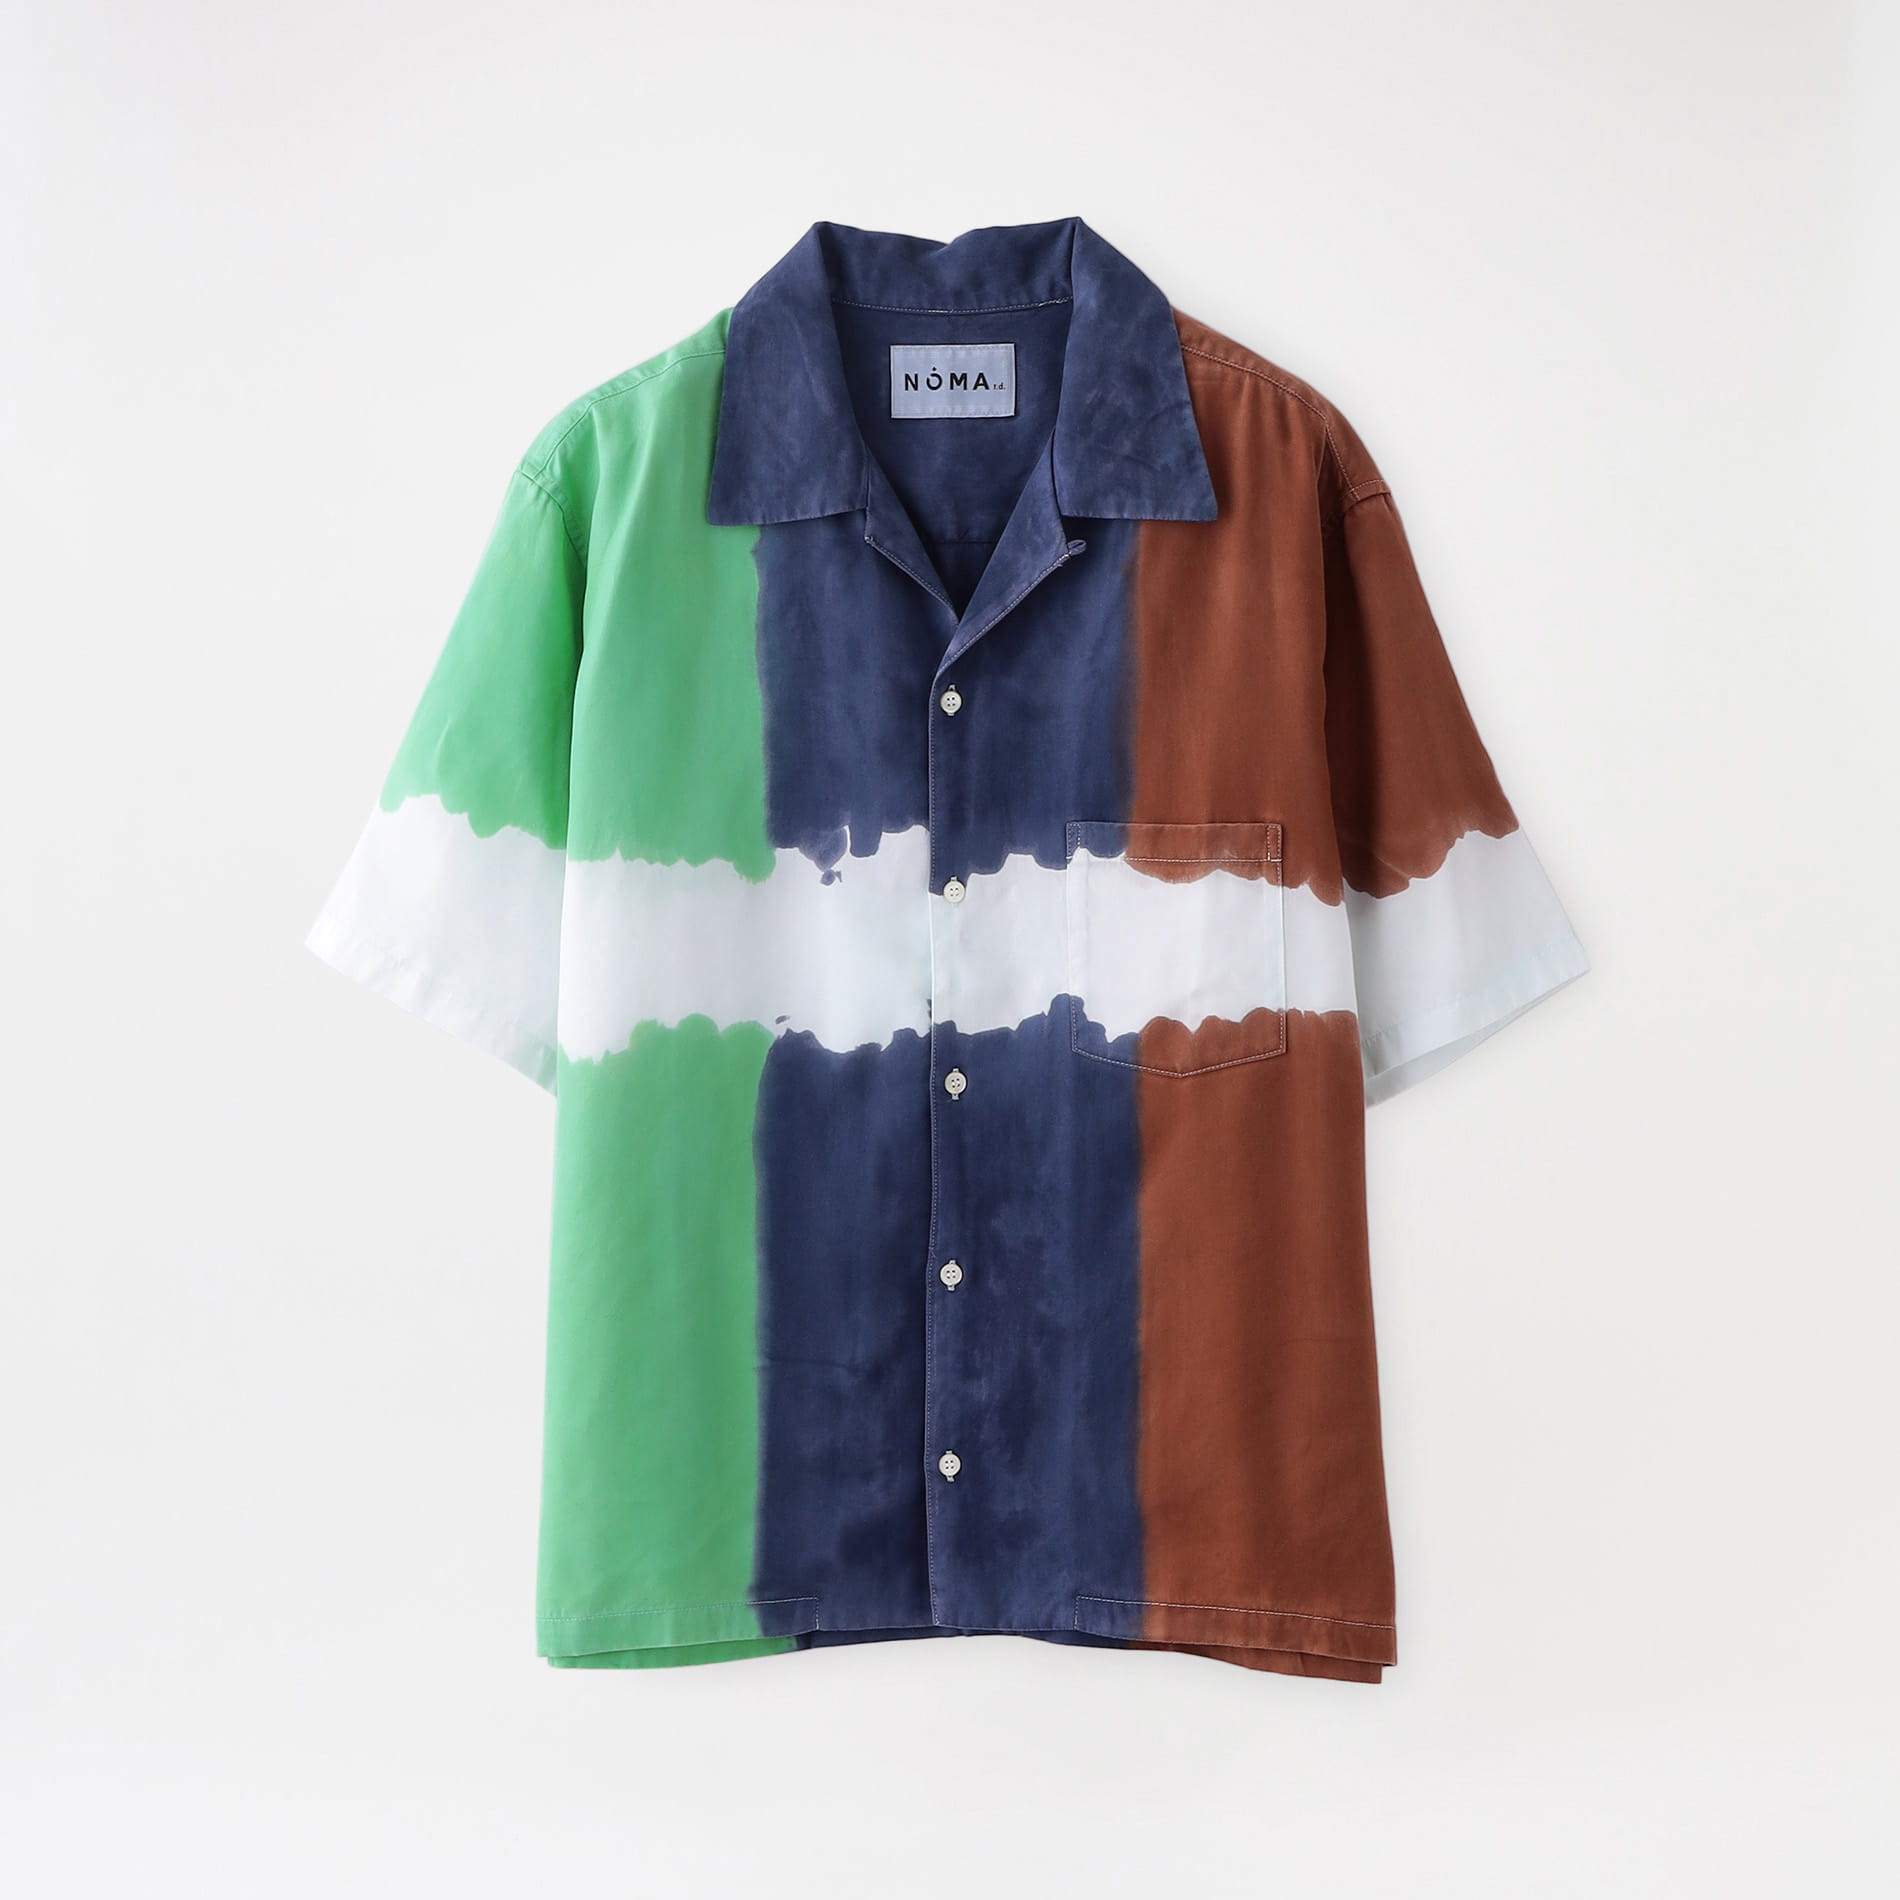 【NOMA t.d.】MEN シャツ 3-dye SS Shirt-Nature SH 01